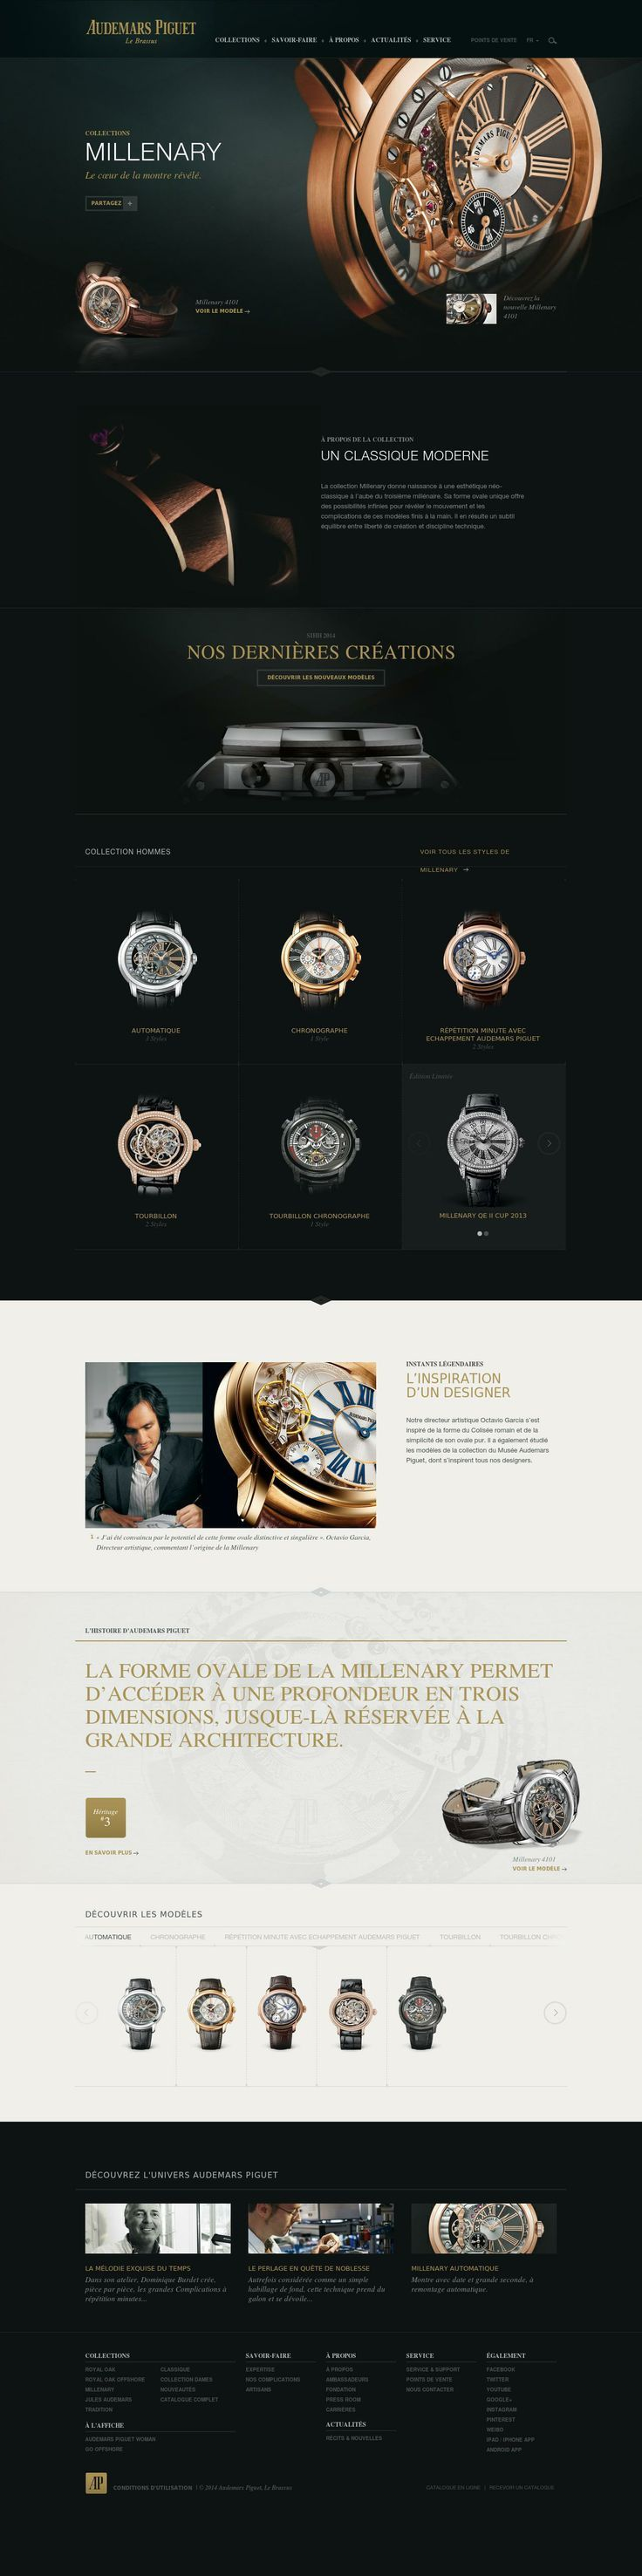 Professional & Trendy Web Design   From up North